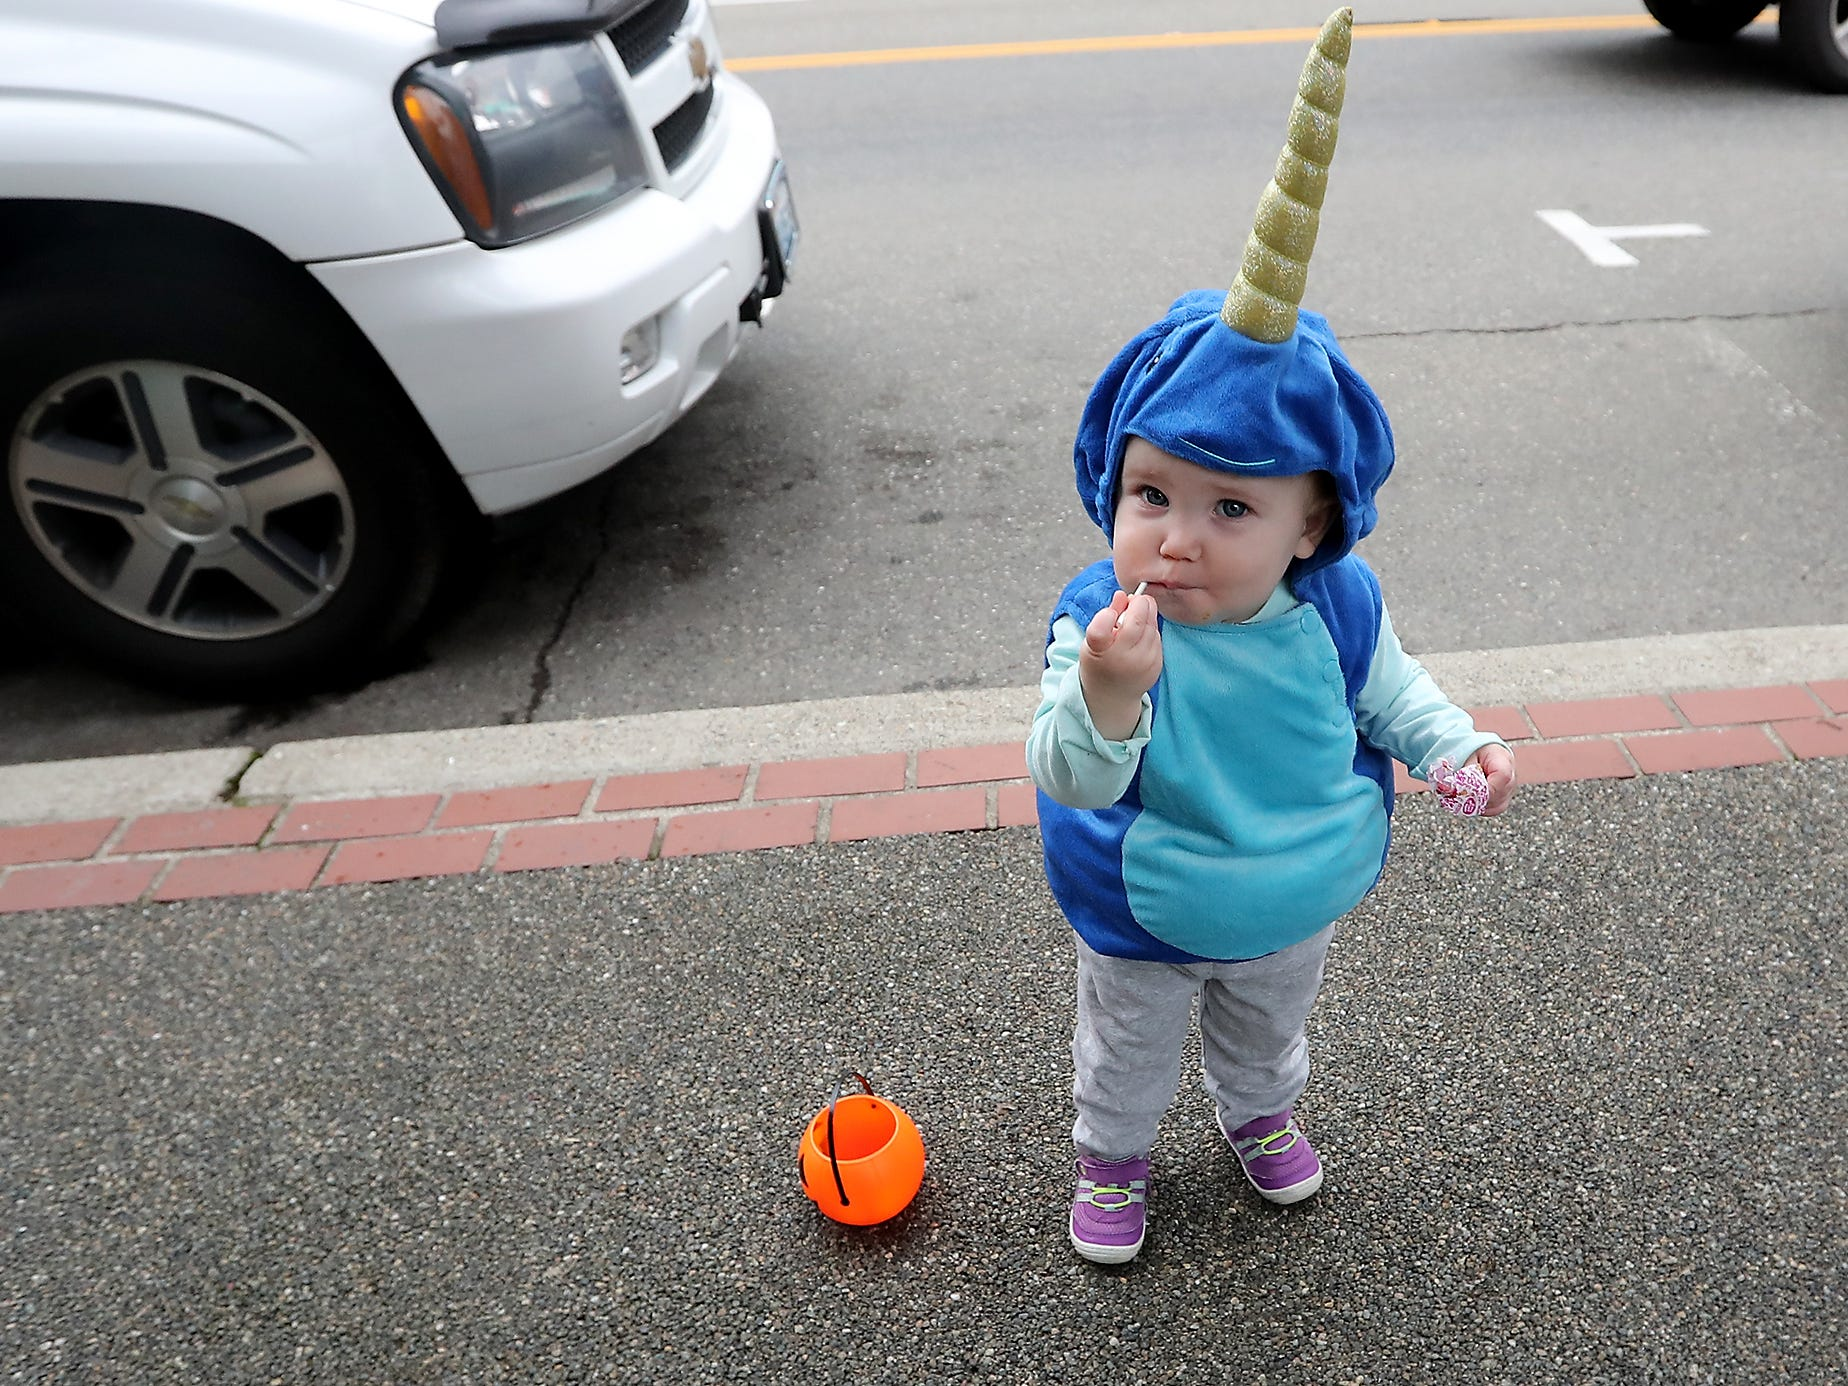 18-month-old Charlotte Hartford, pops a sucker into her mouth while dressed as a narwhal during the Halloween Spookfest in downtown Port Orchard on Saturday, October 27, 2018.